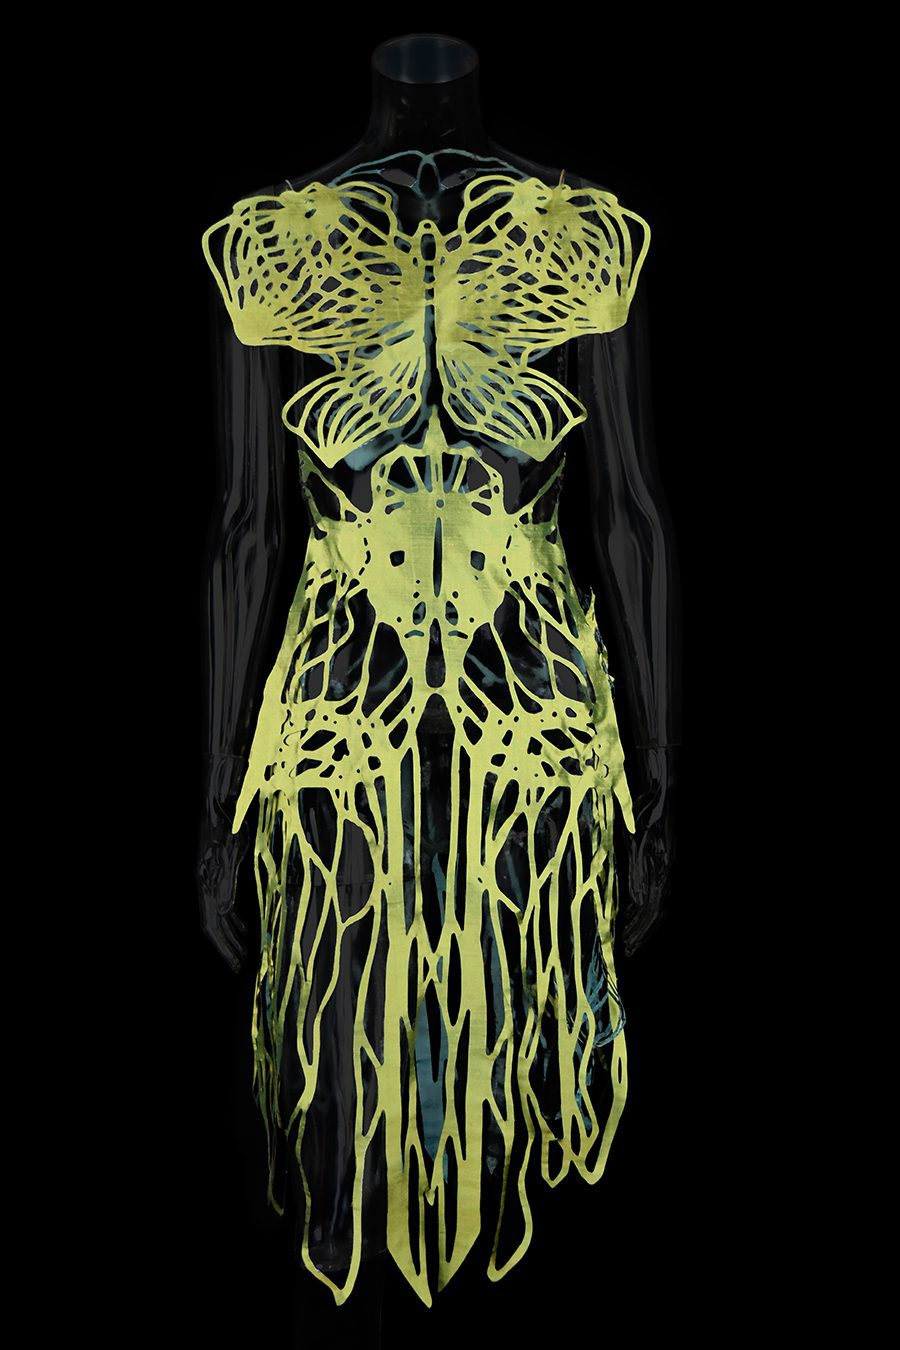 2017-Amy-Karle-Internal-Collection-green-silk-dress-based-on-ligaments-and-tendons03